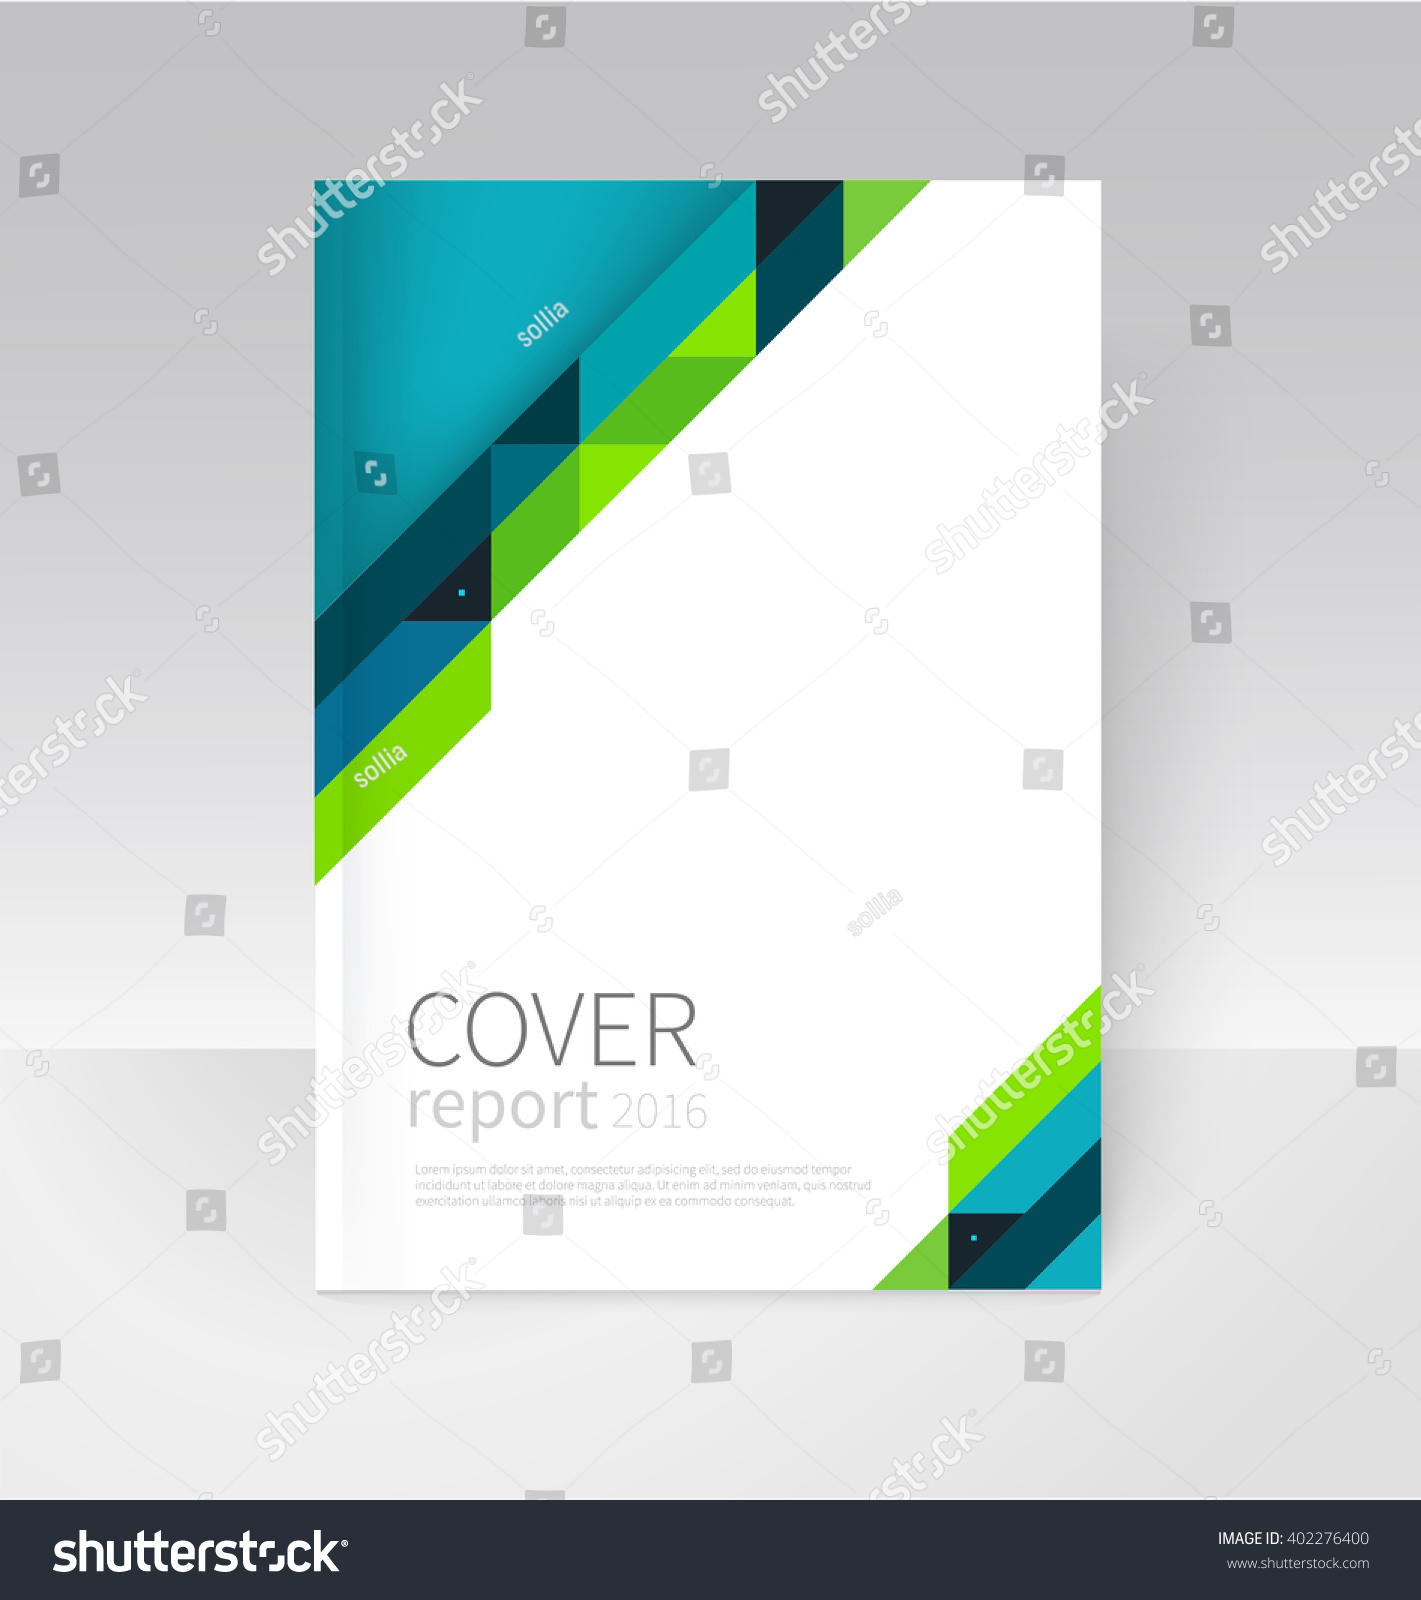 report cover template word